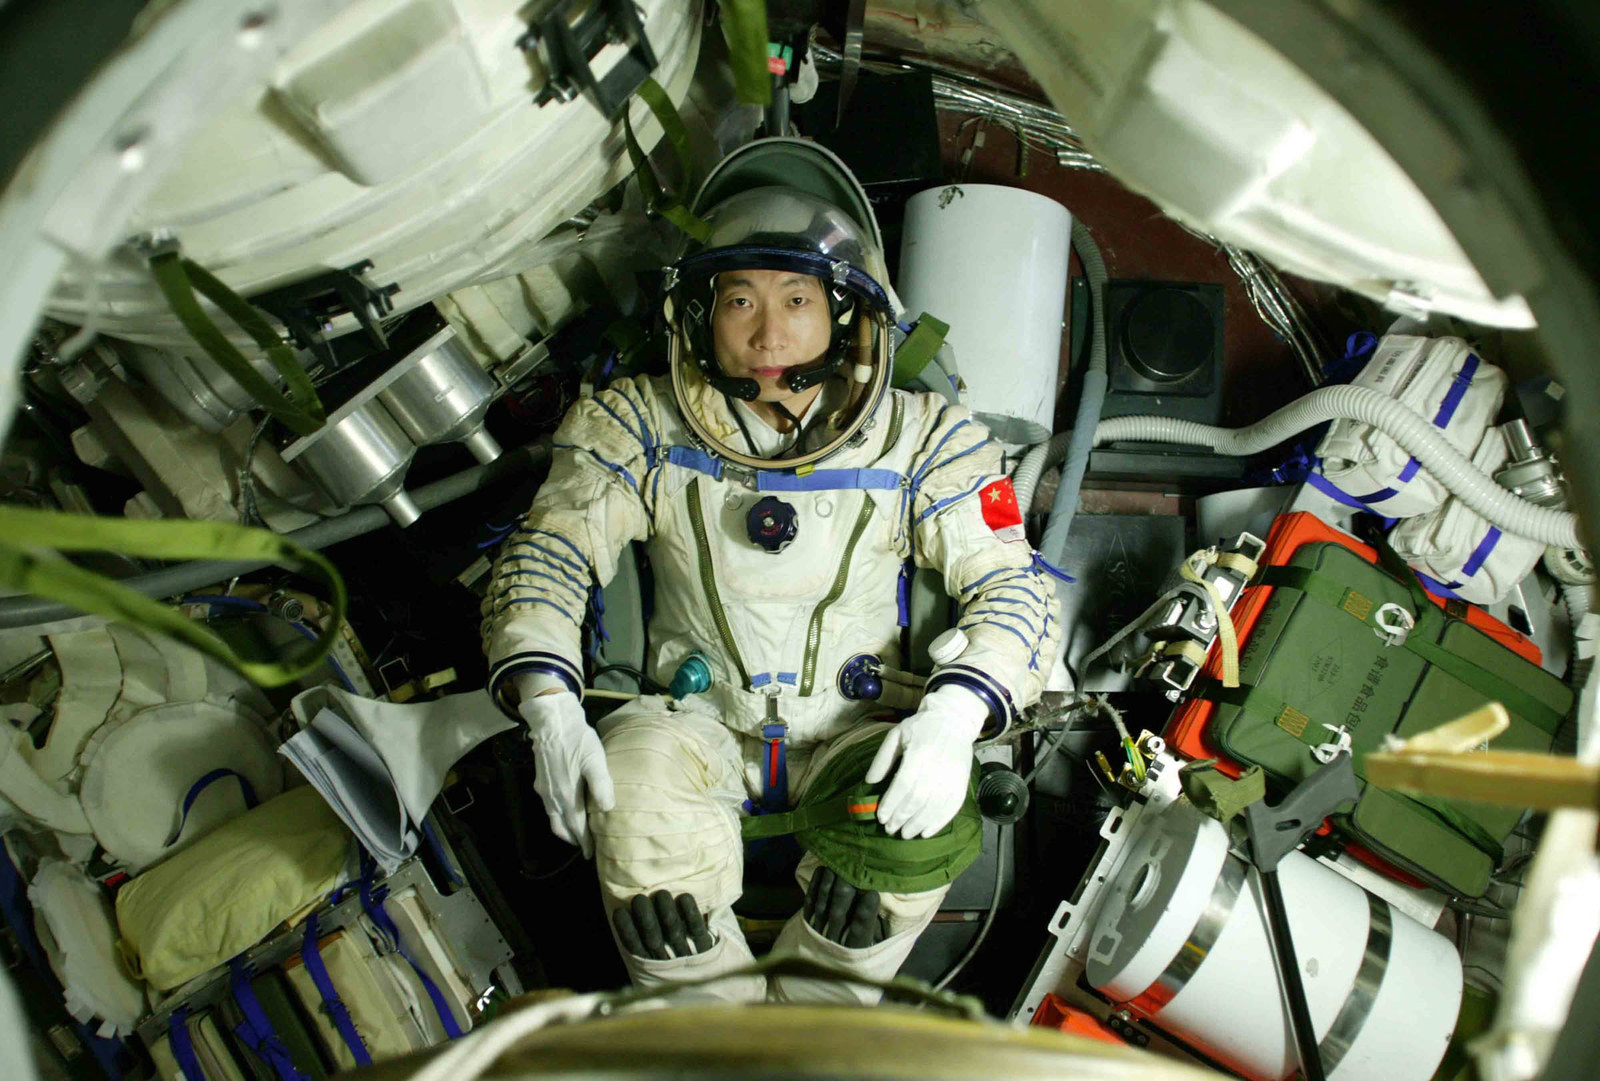 2003 Astronaut Yang Liwei lies in the re-entry capsule of the Shenzhou-5 spacecraft during training on Sept. 27, 2003, in Beijing.